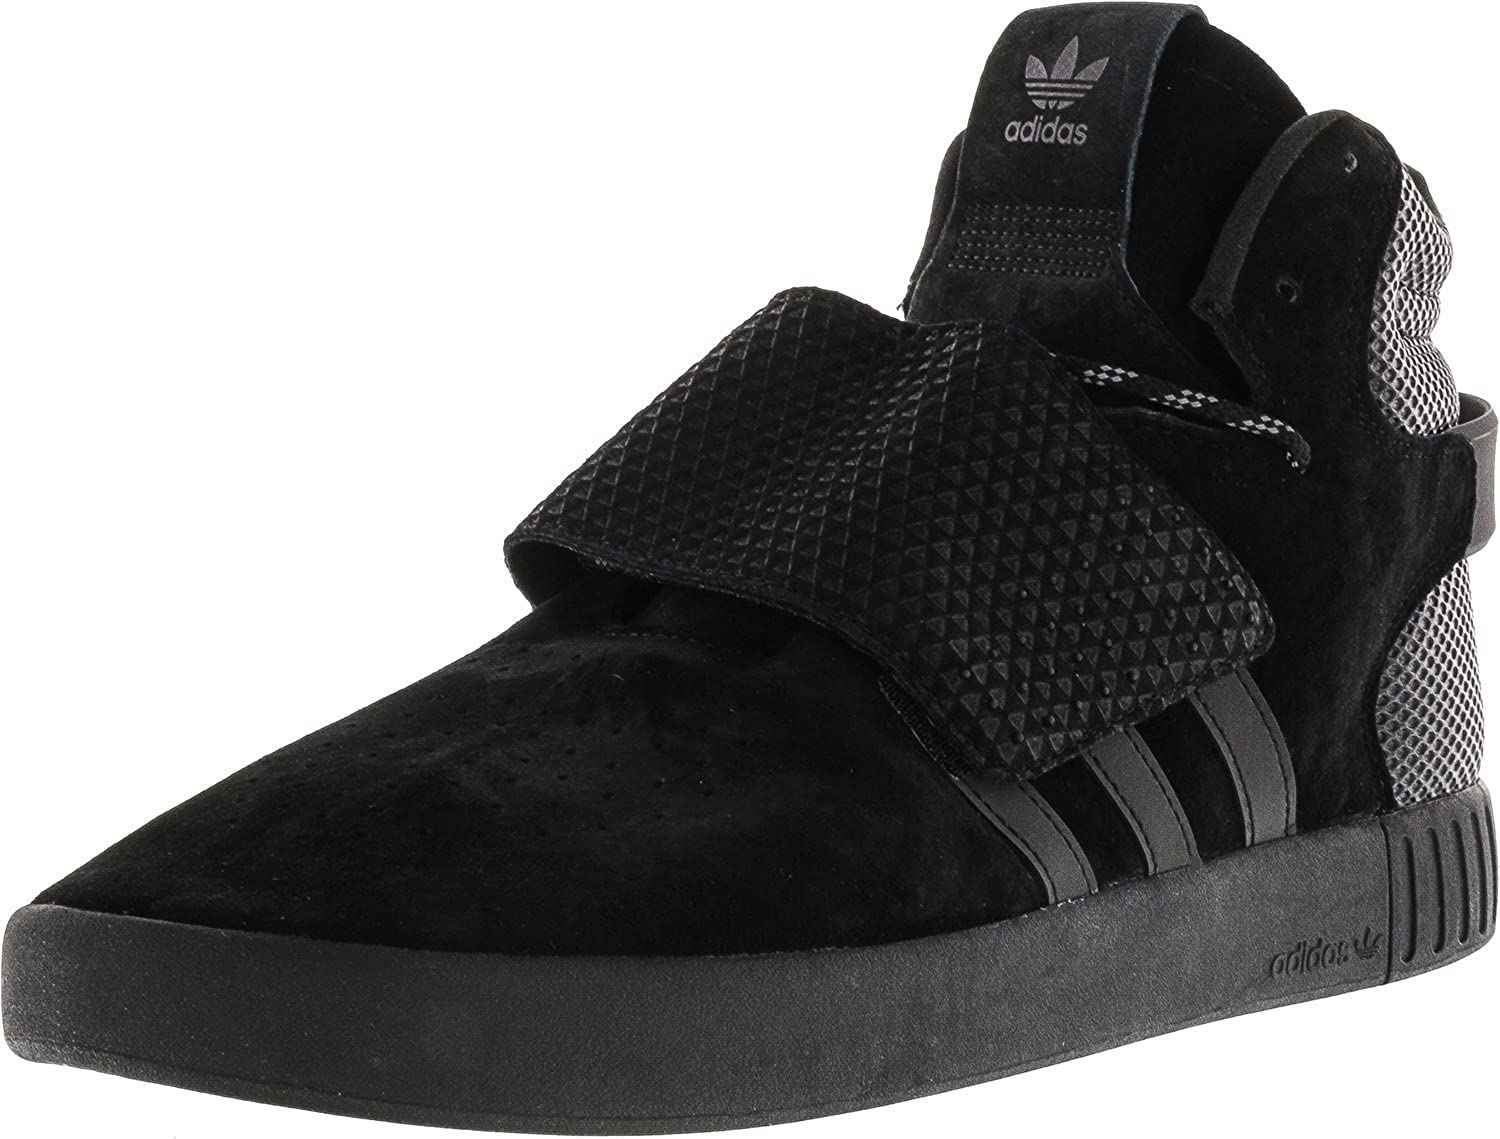 Men's/Women's adidas Tubular Invader Strap, Unisex Adults' Adults' Adults' High Trainers Rich design Lush design renewed on time VW2080 06bc7b